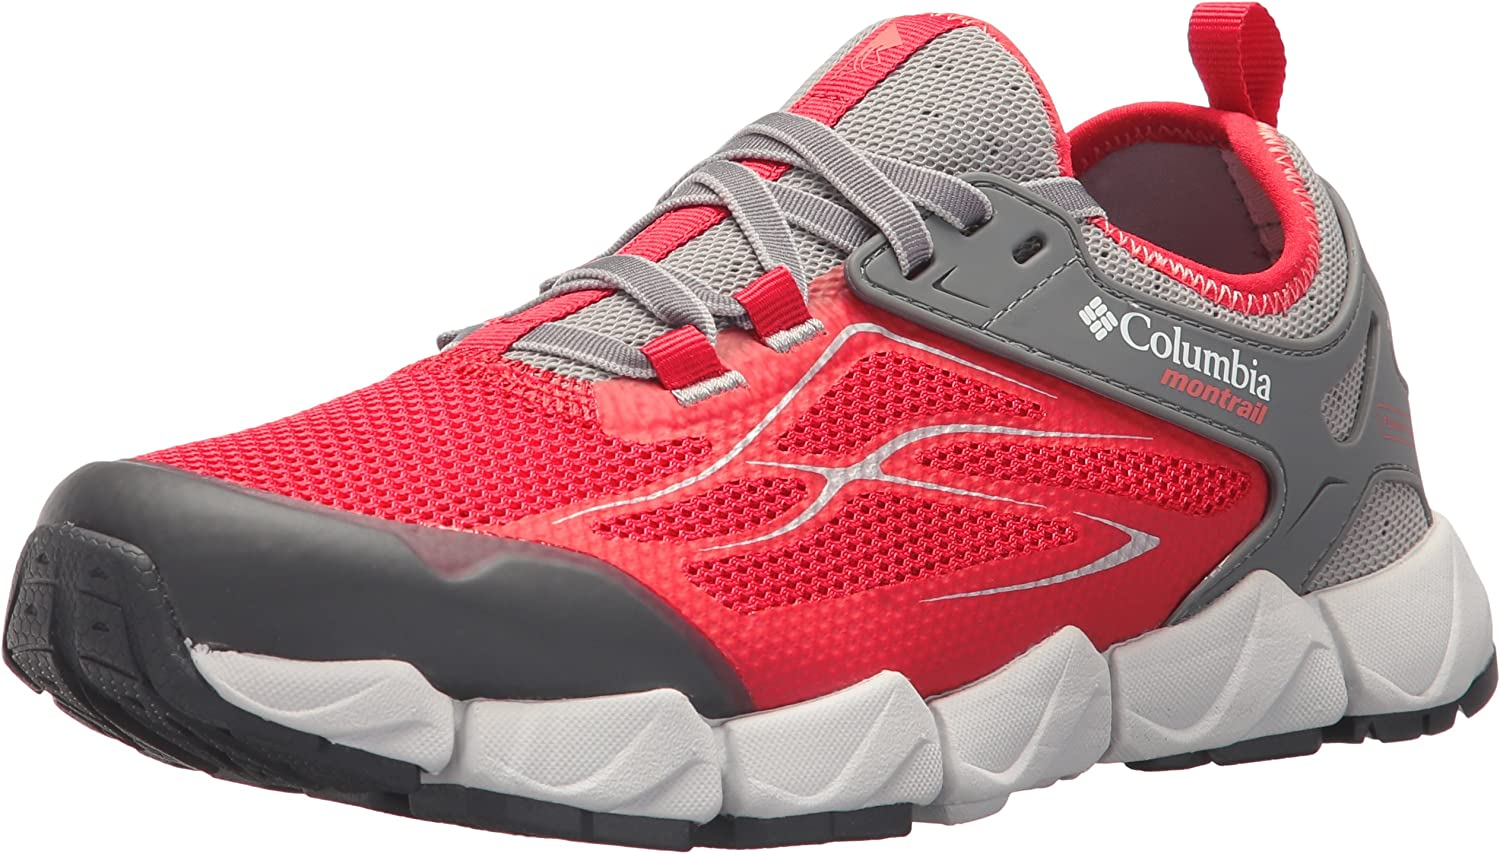 Columbia Women s Fluidflex X.S.R. Trail Running Shoe, red Camellia, melonade, 9.5 B US